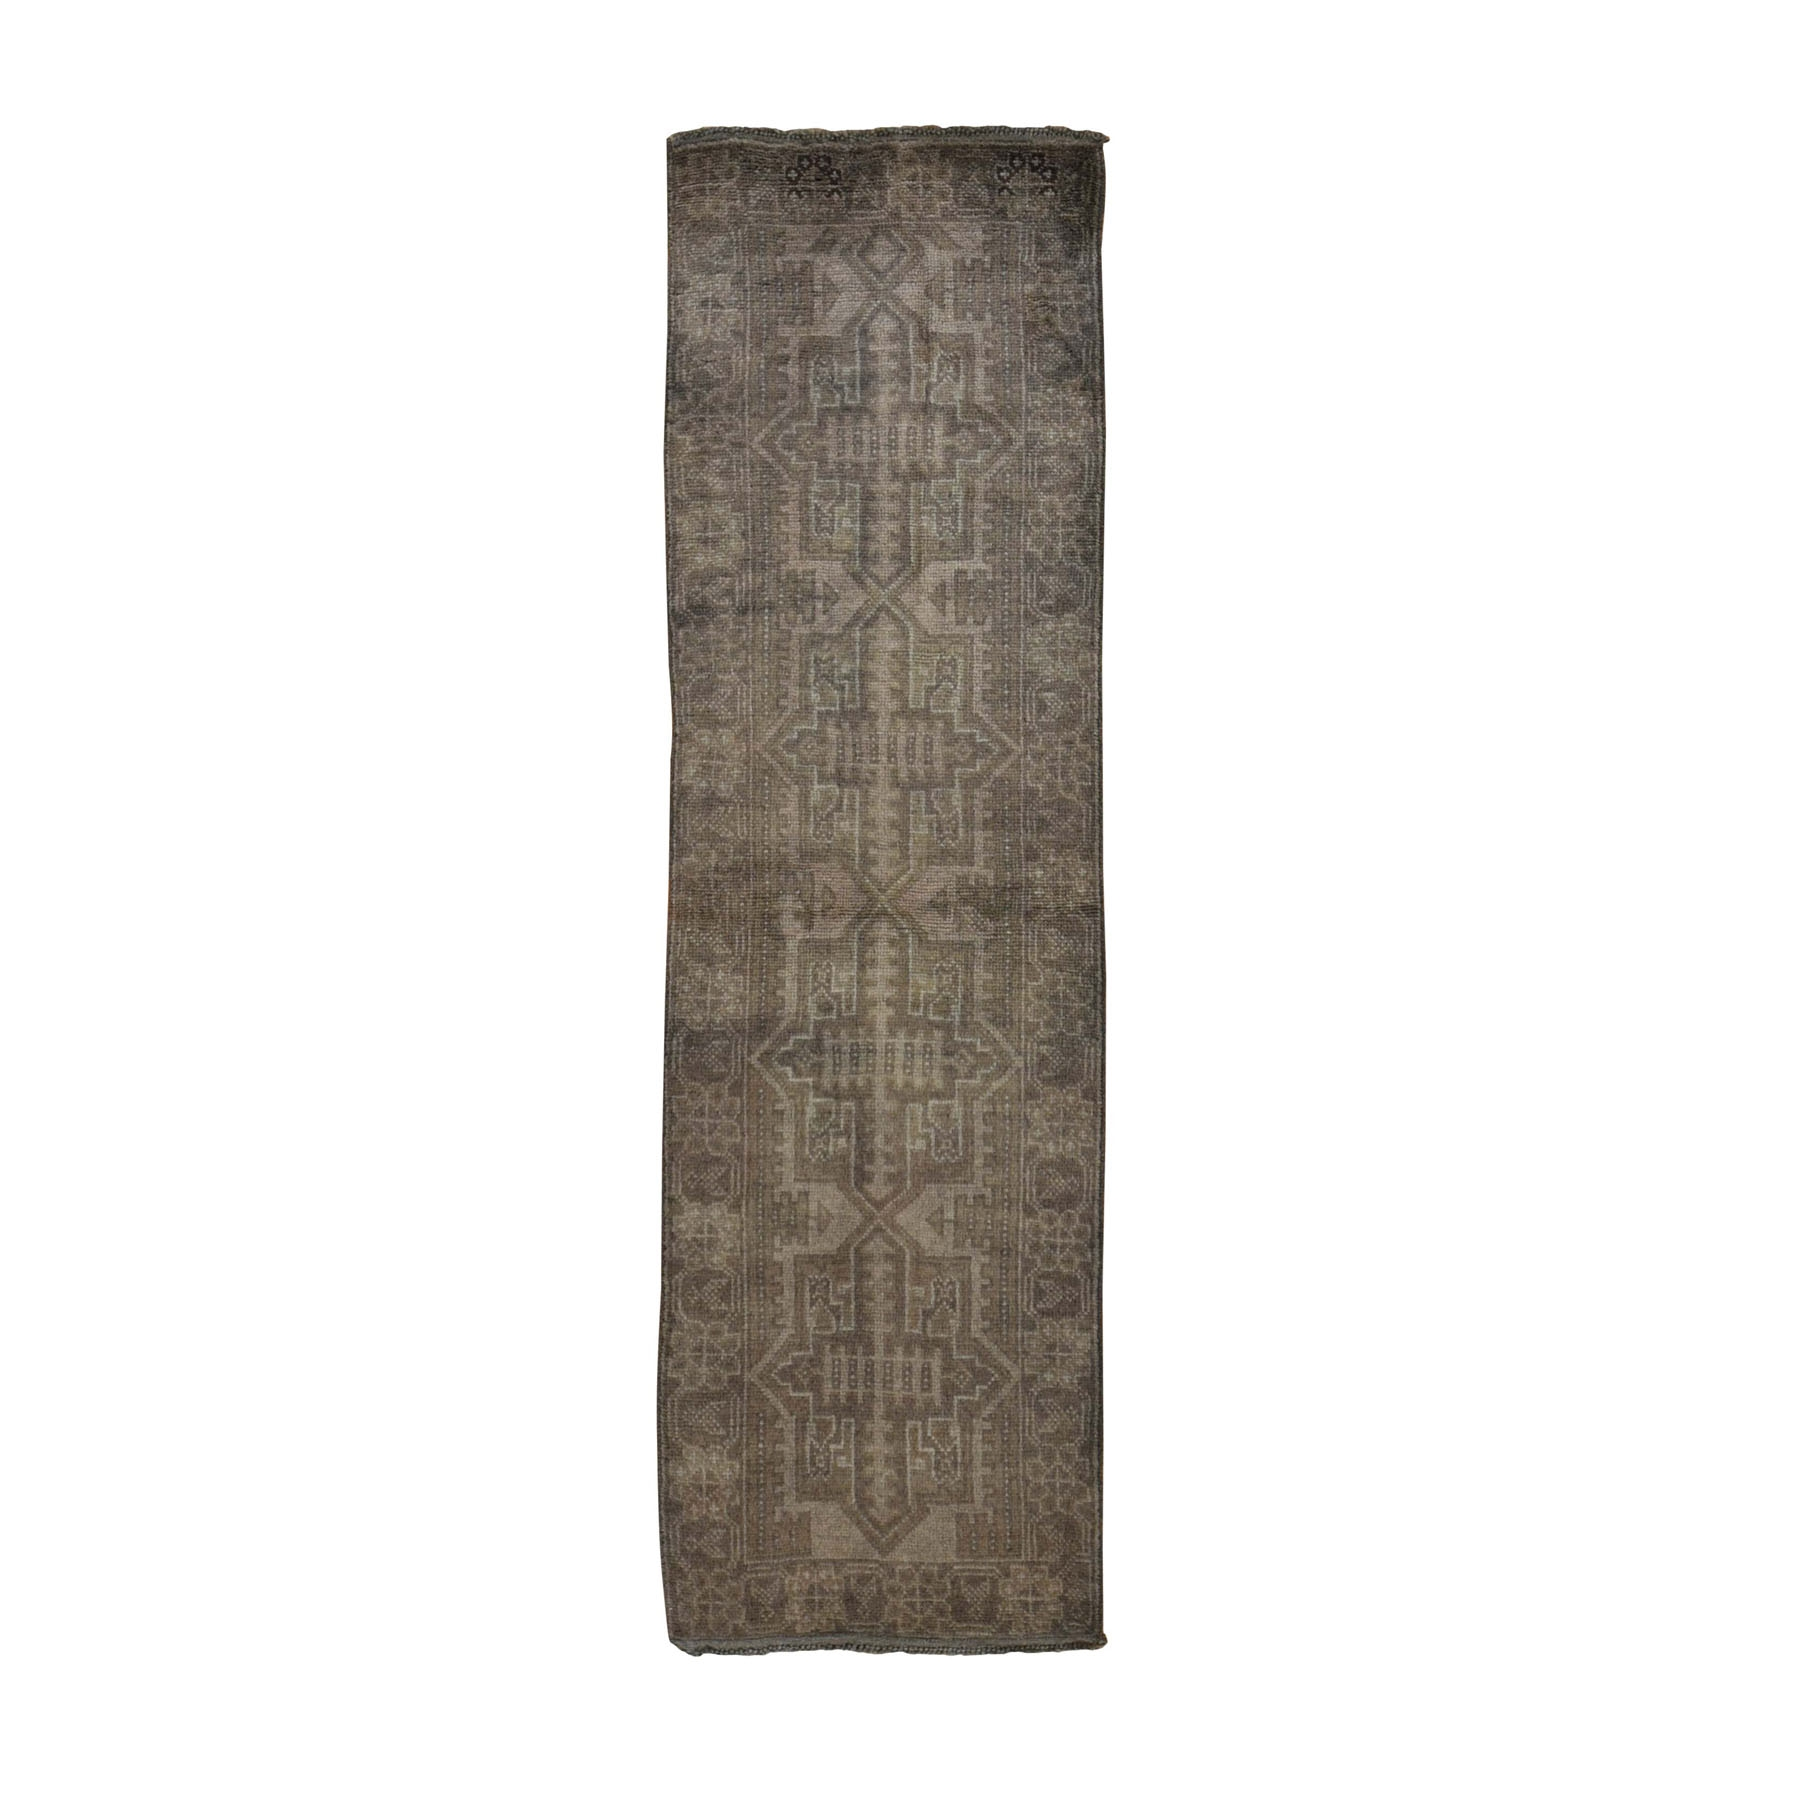 Nomadic And Village Collection Hand Knotted Brown Rug No: 0198390